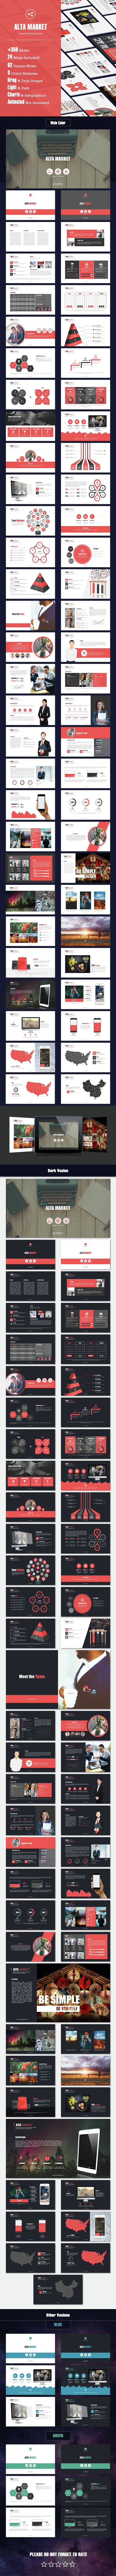 ALTA - PowerPoint Presentation Template #slides Download here: http://graphicriver.net/item/alta/14591083?ref=ksioks